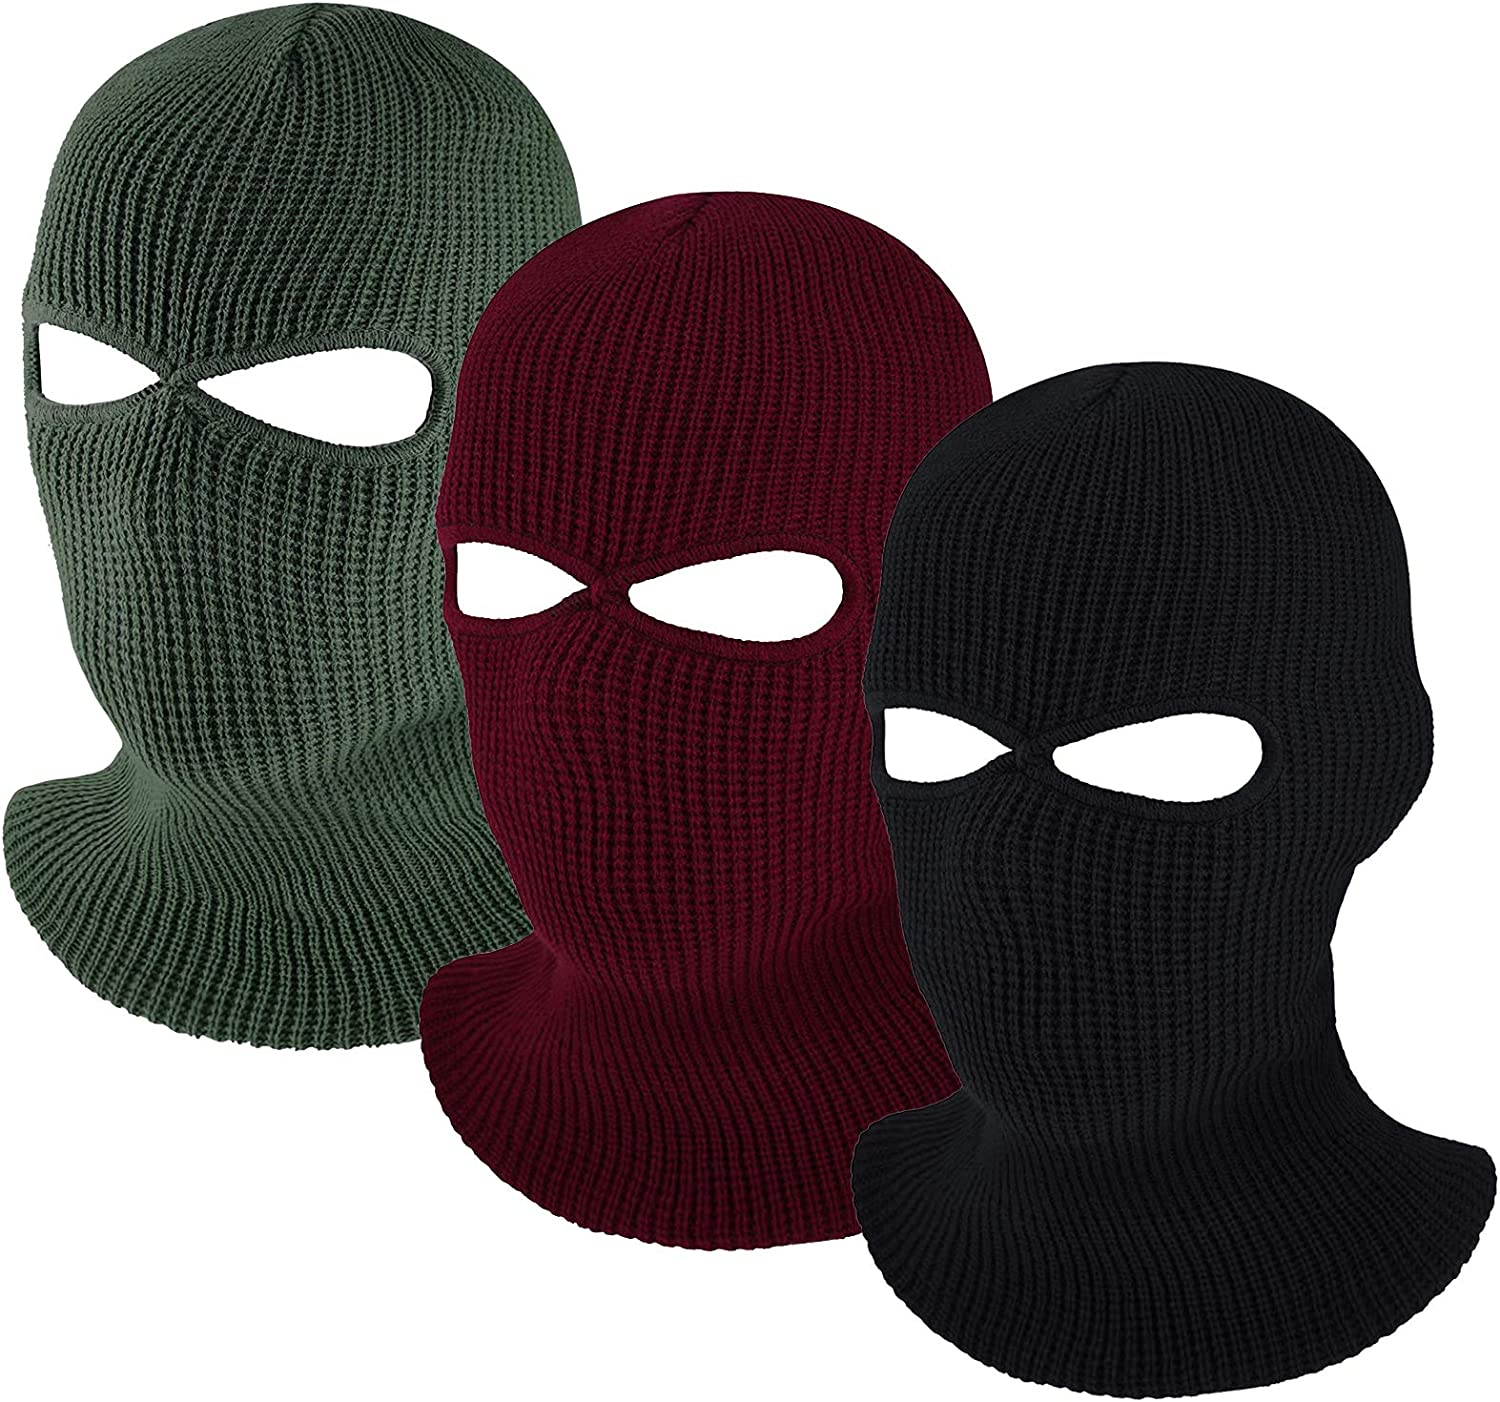 2hole Full Face Cover Ski Mask Knitted Balaclava Warm Knit for Man Women Outdoor